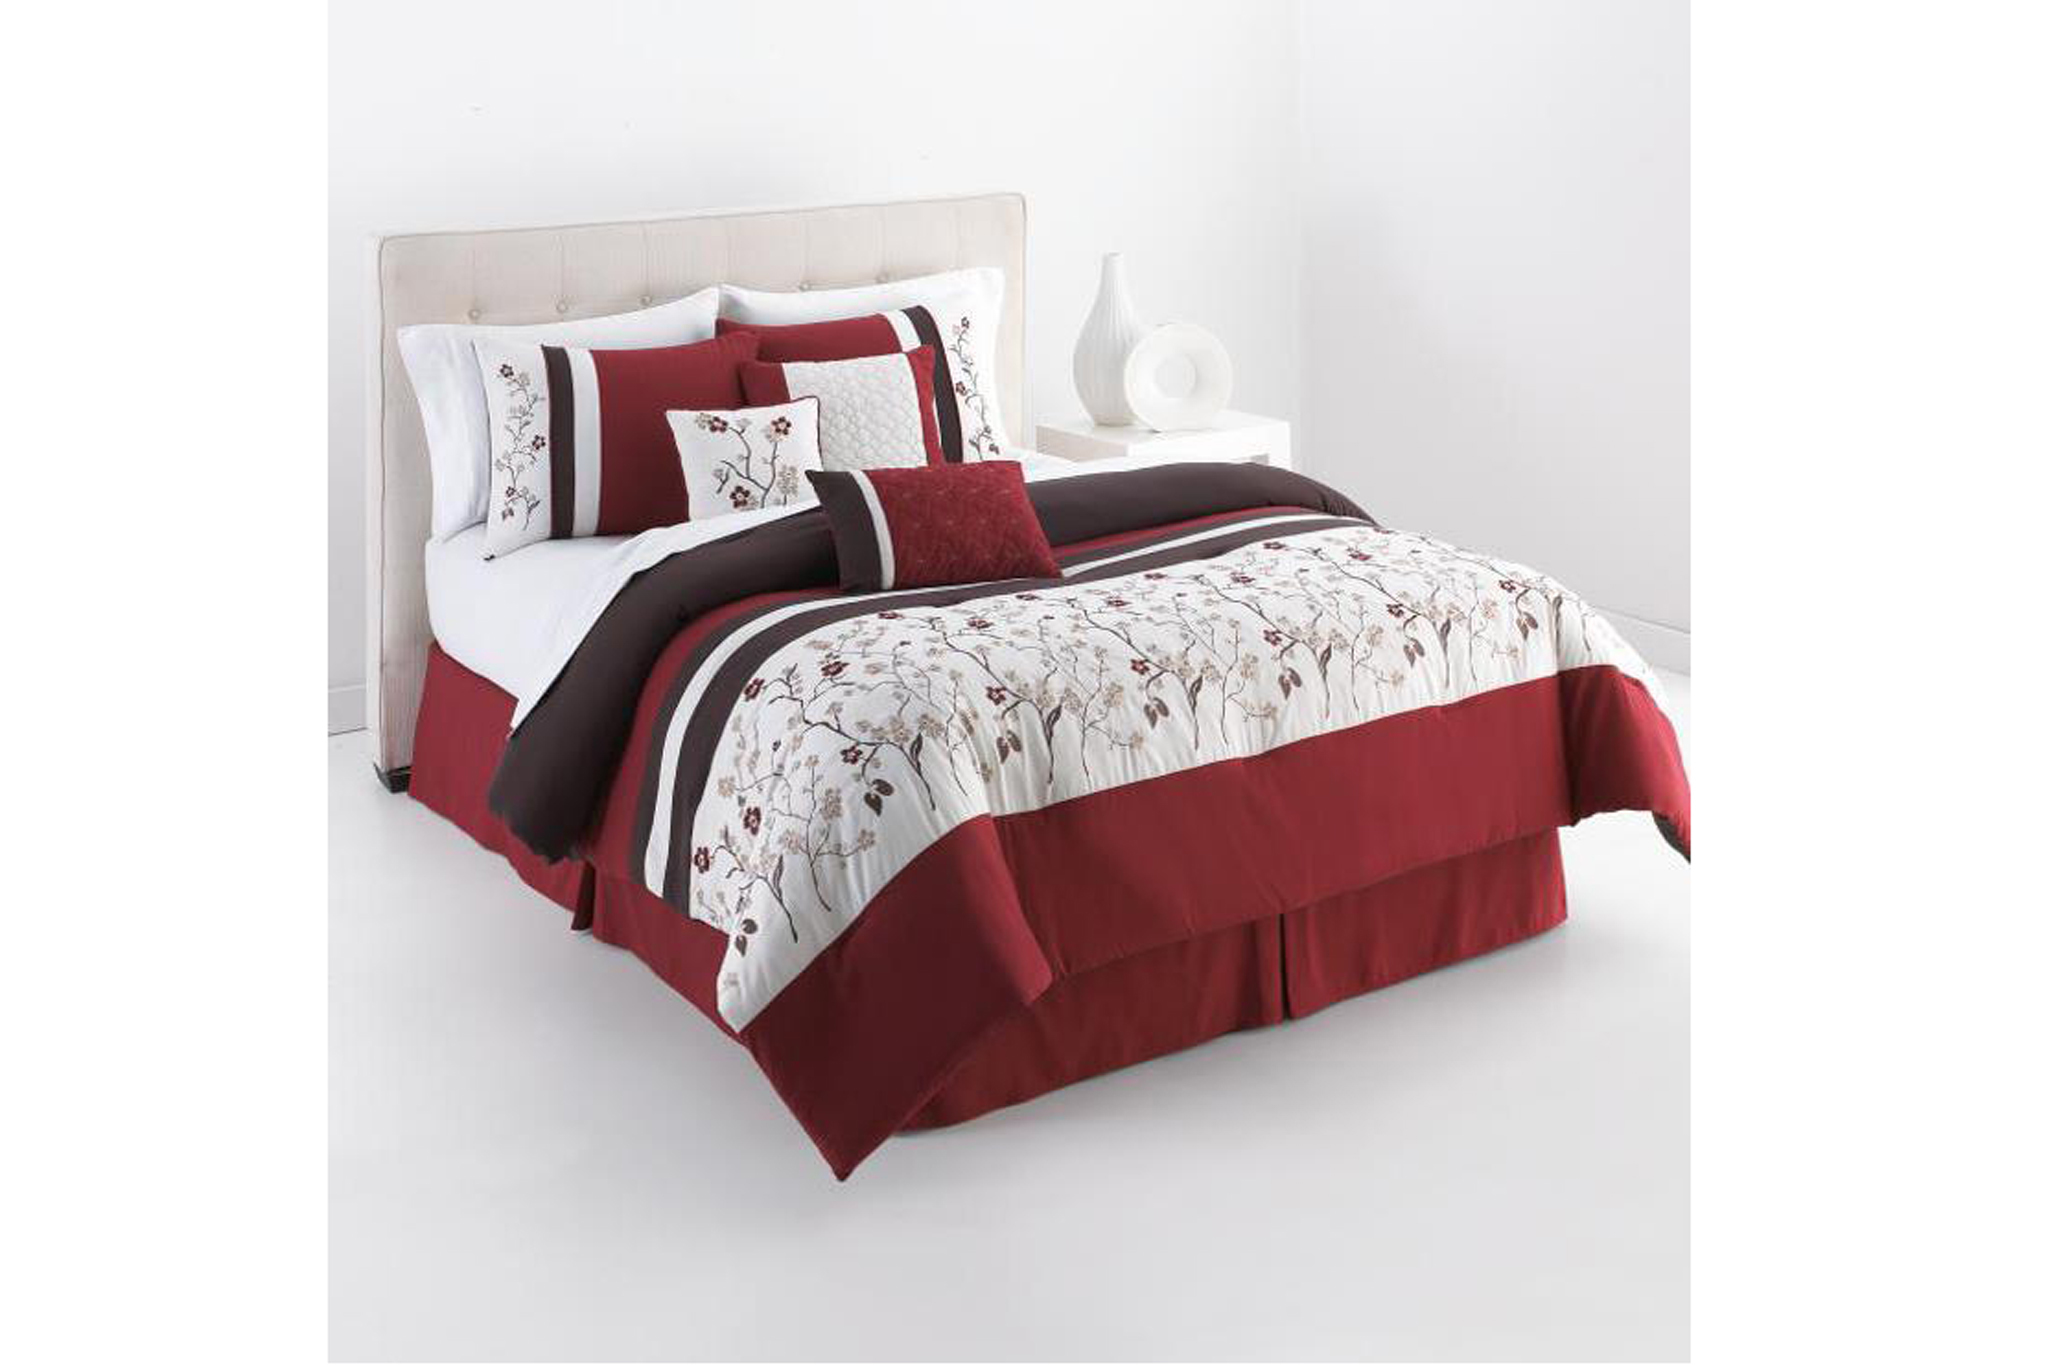 eva news home viewmedia macy full bed mgid exclusively vid decor frame size brand mendes launches en s at macys download